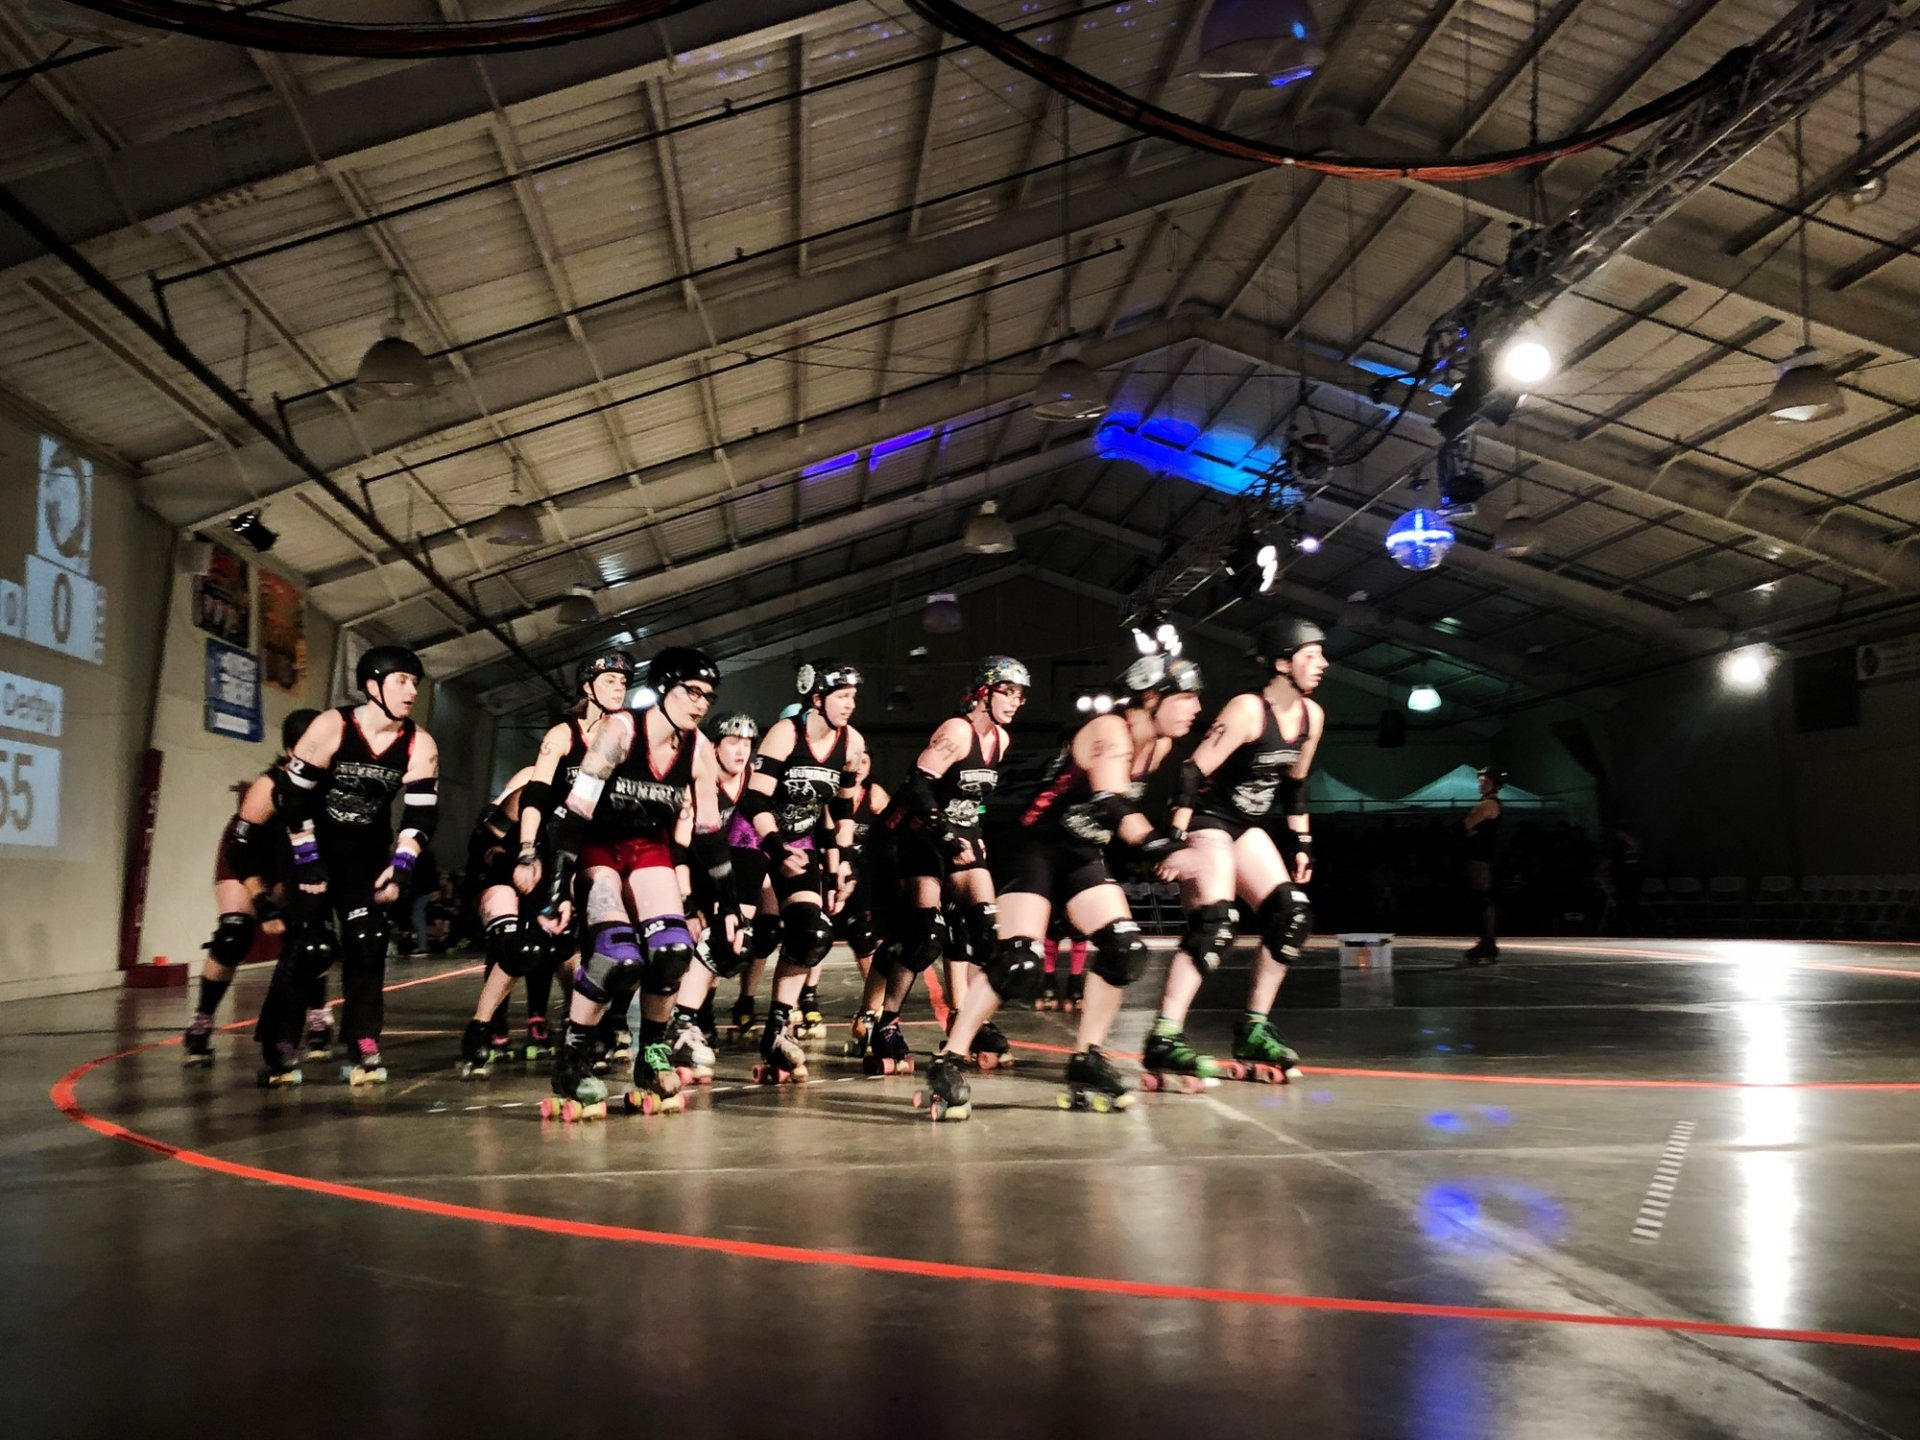 Root Force got in formation to take a few practice laps around the ring before the second game of the night began. Photo by Cassaundra Caudillo Photo credit: Cassaundra Caudillo